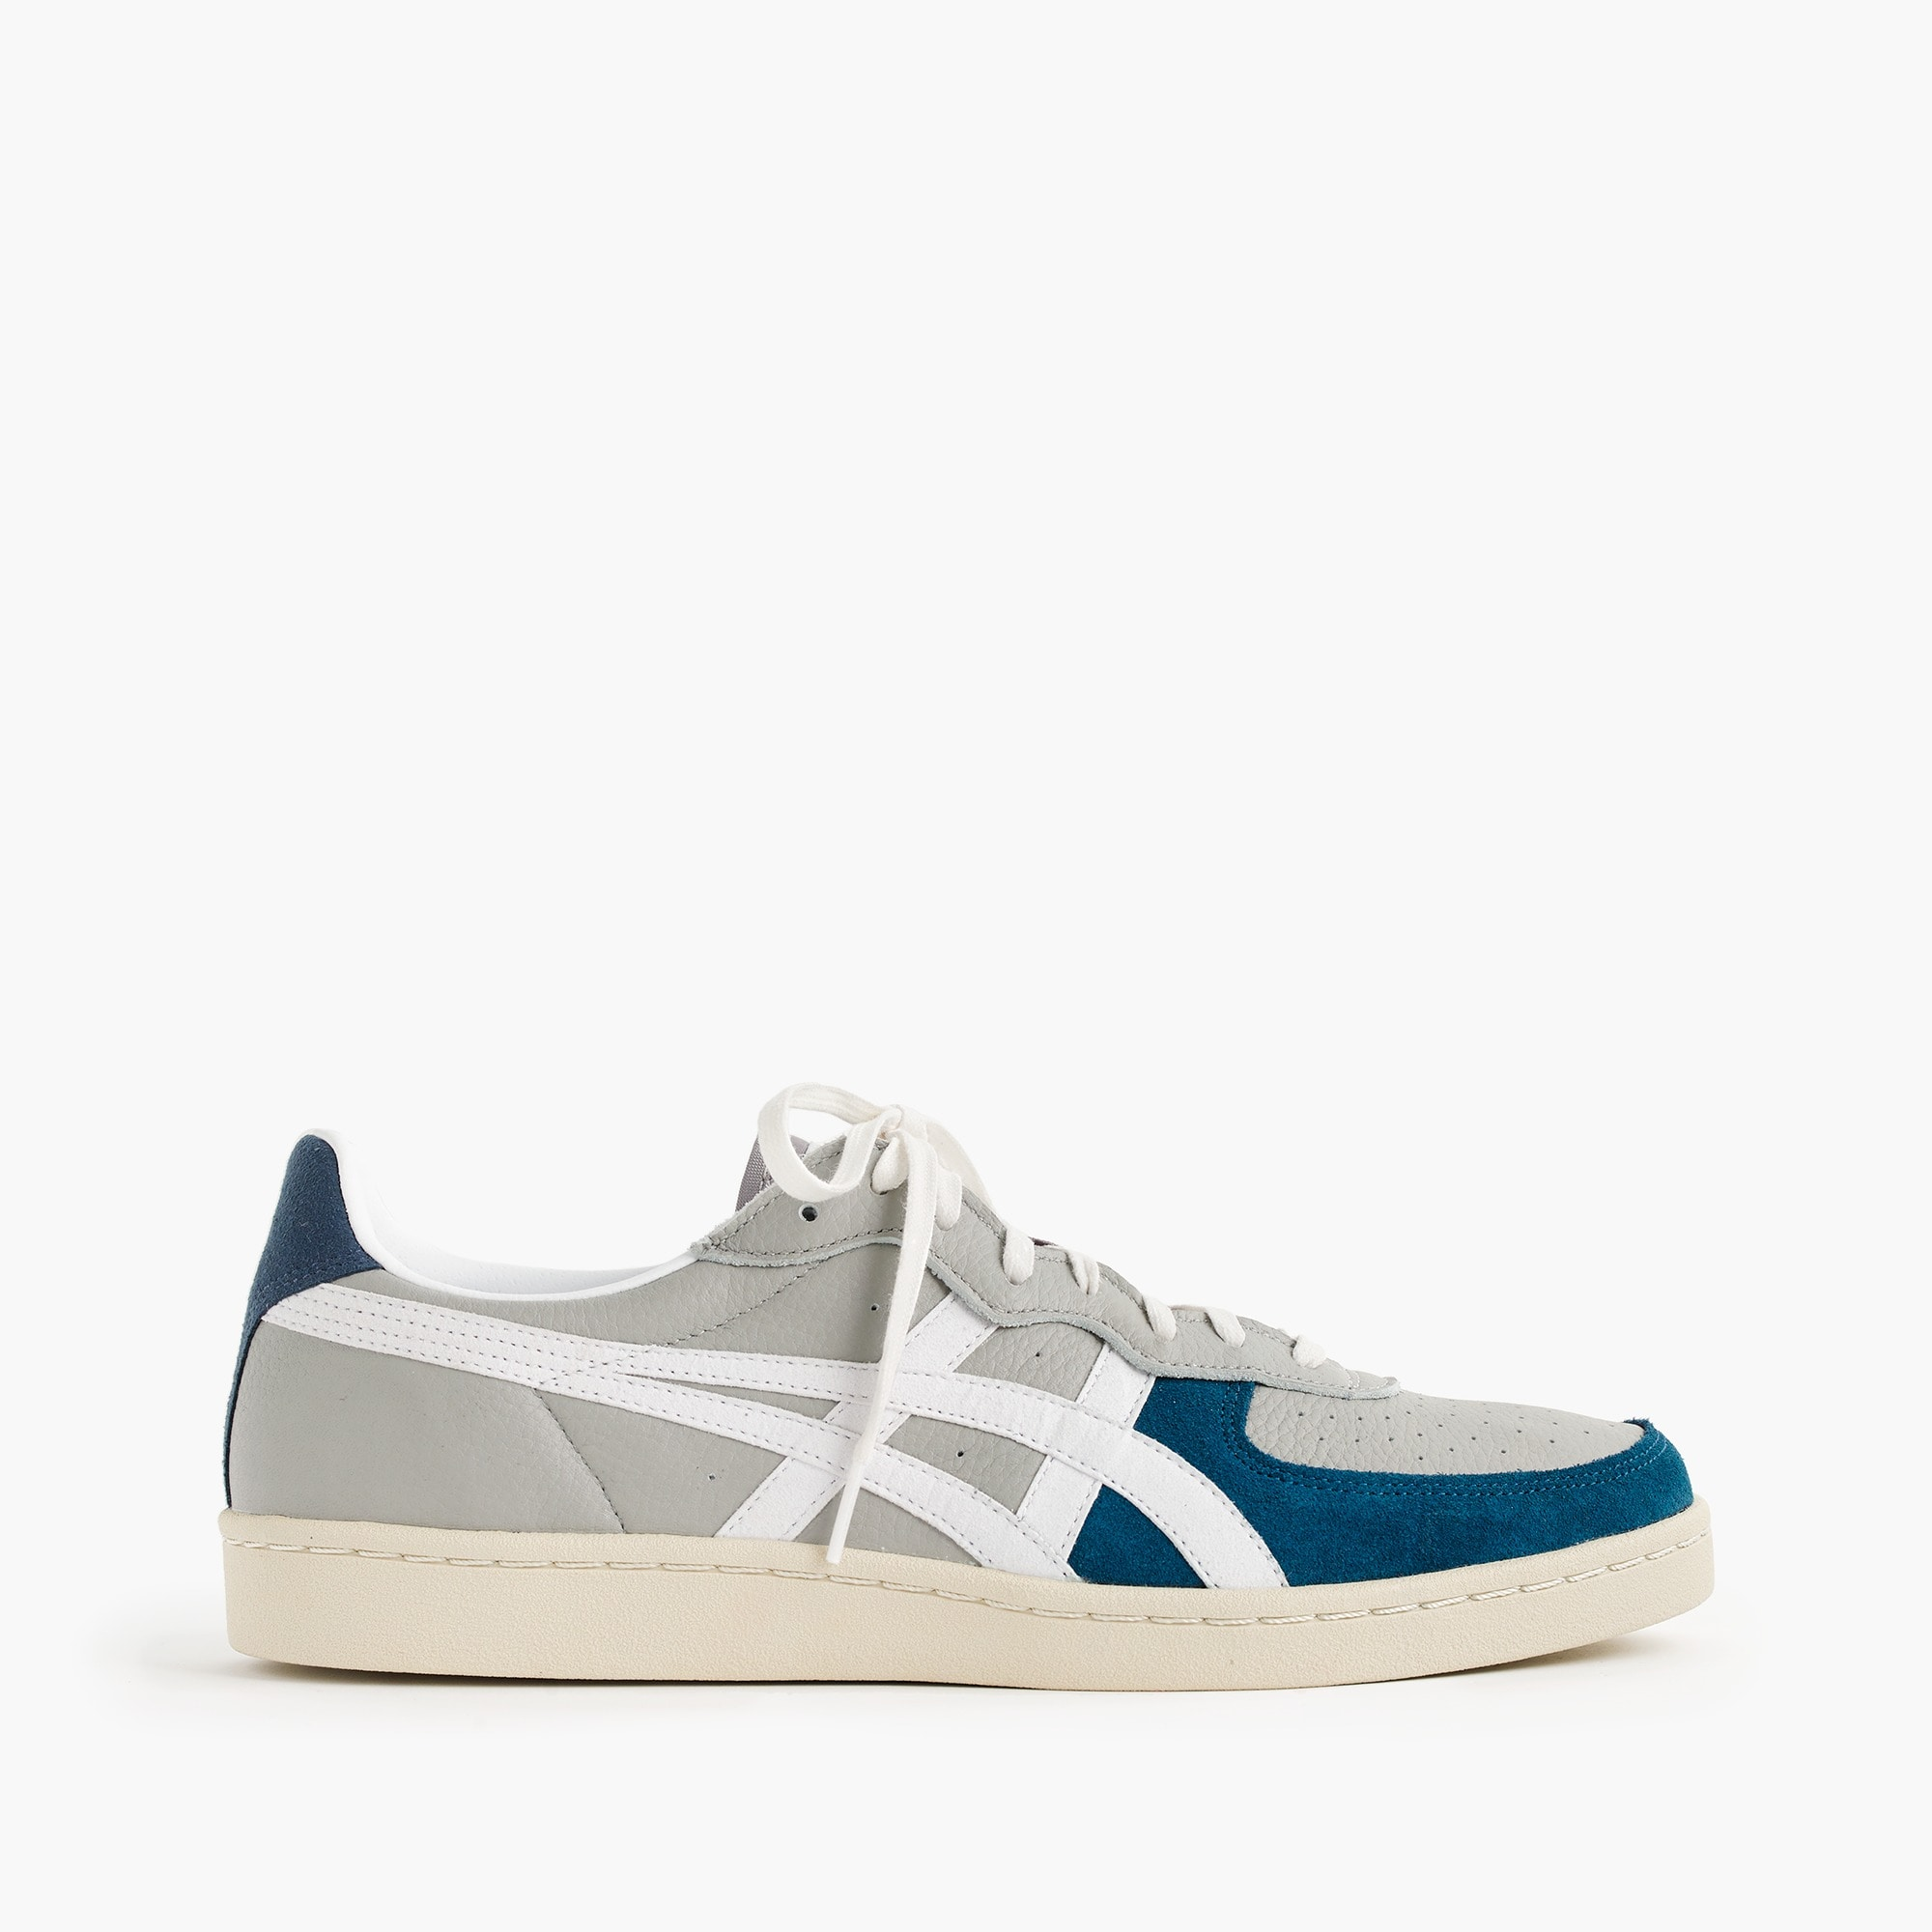 Onitsuka Tiger for J.Crew GSM™ sneakers